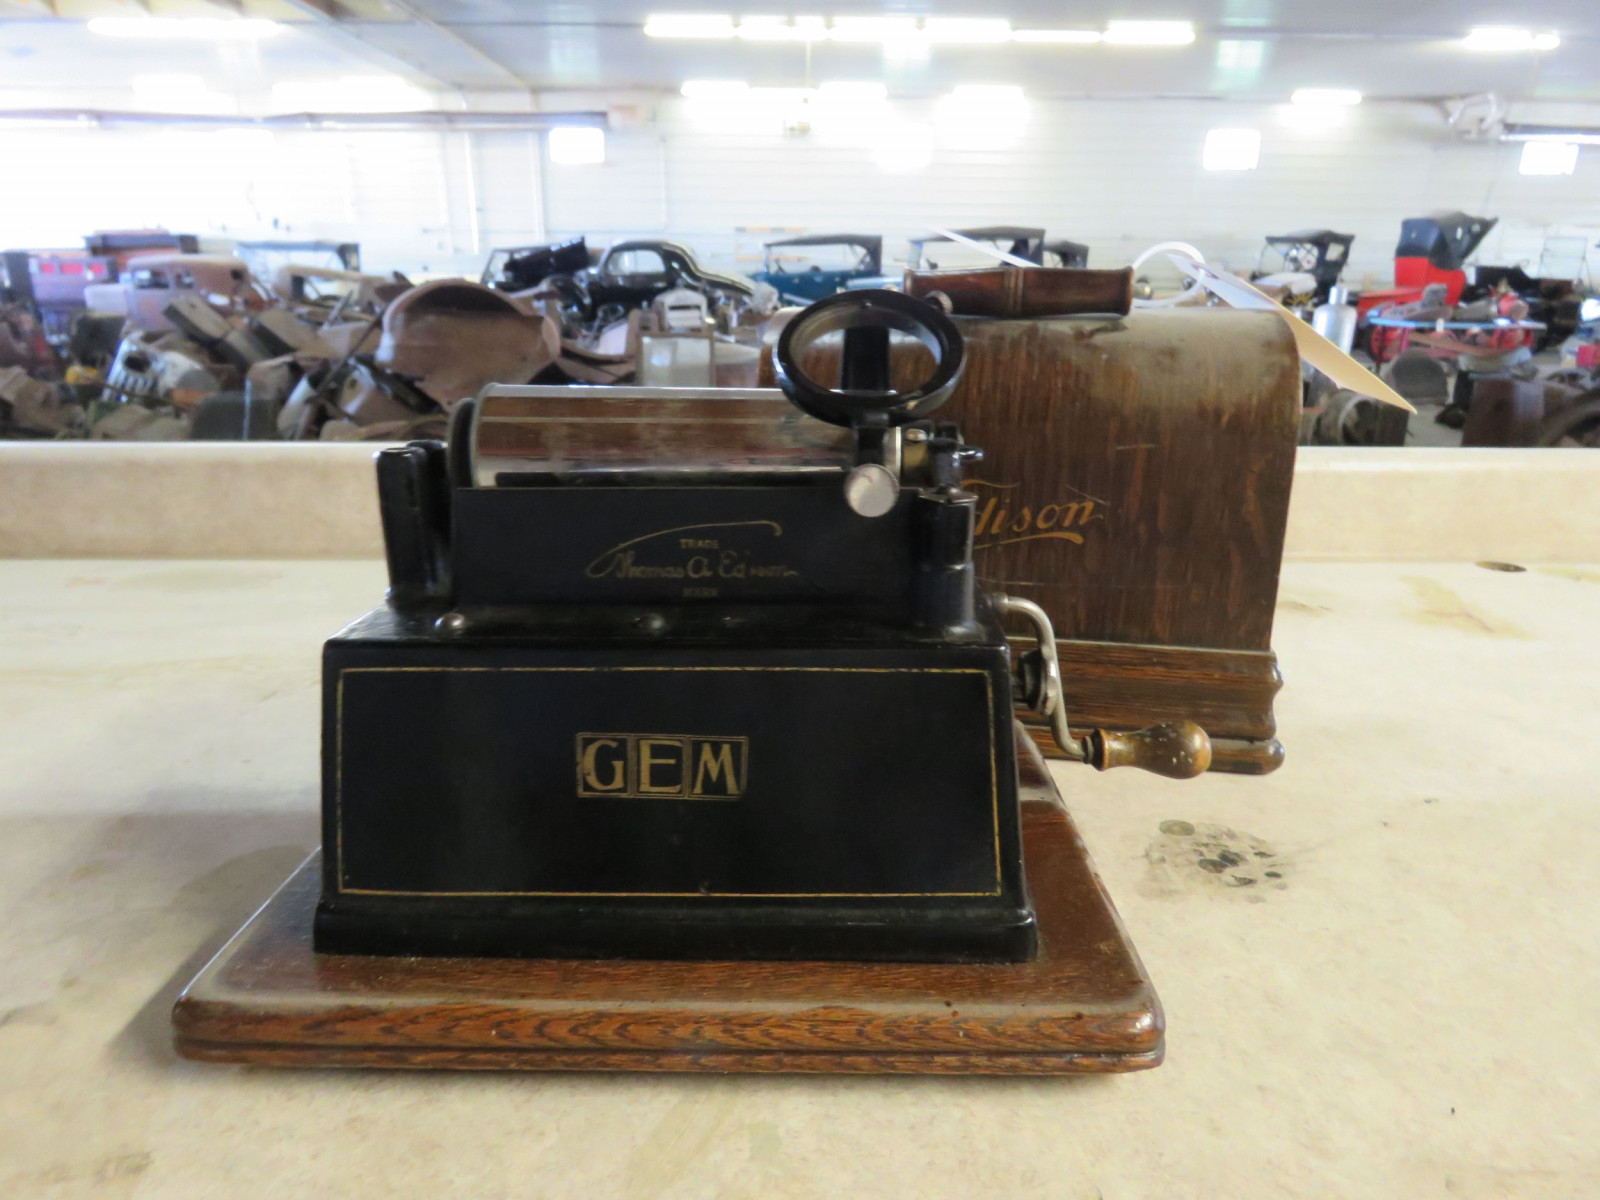 Vintage Edison Gem Combination Phonograph - Image 2